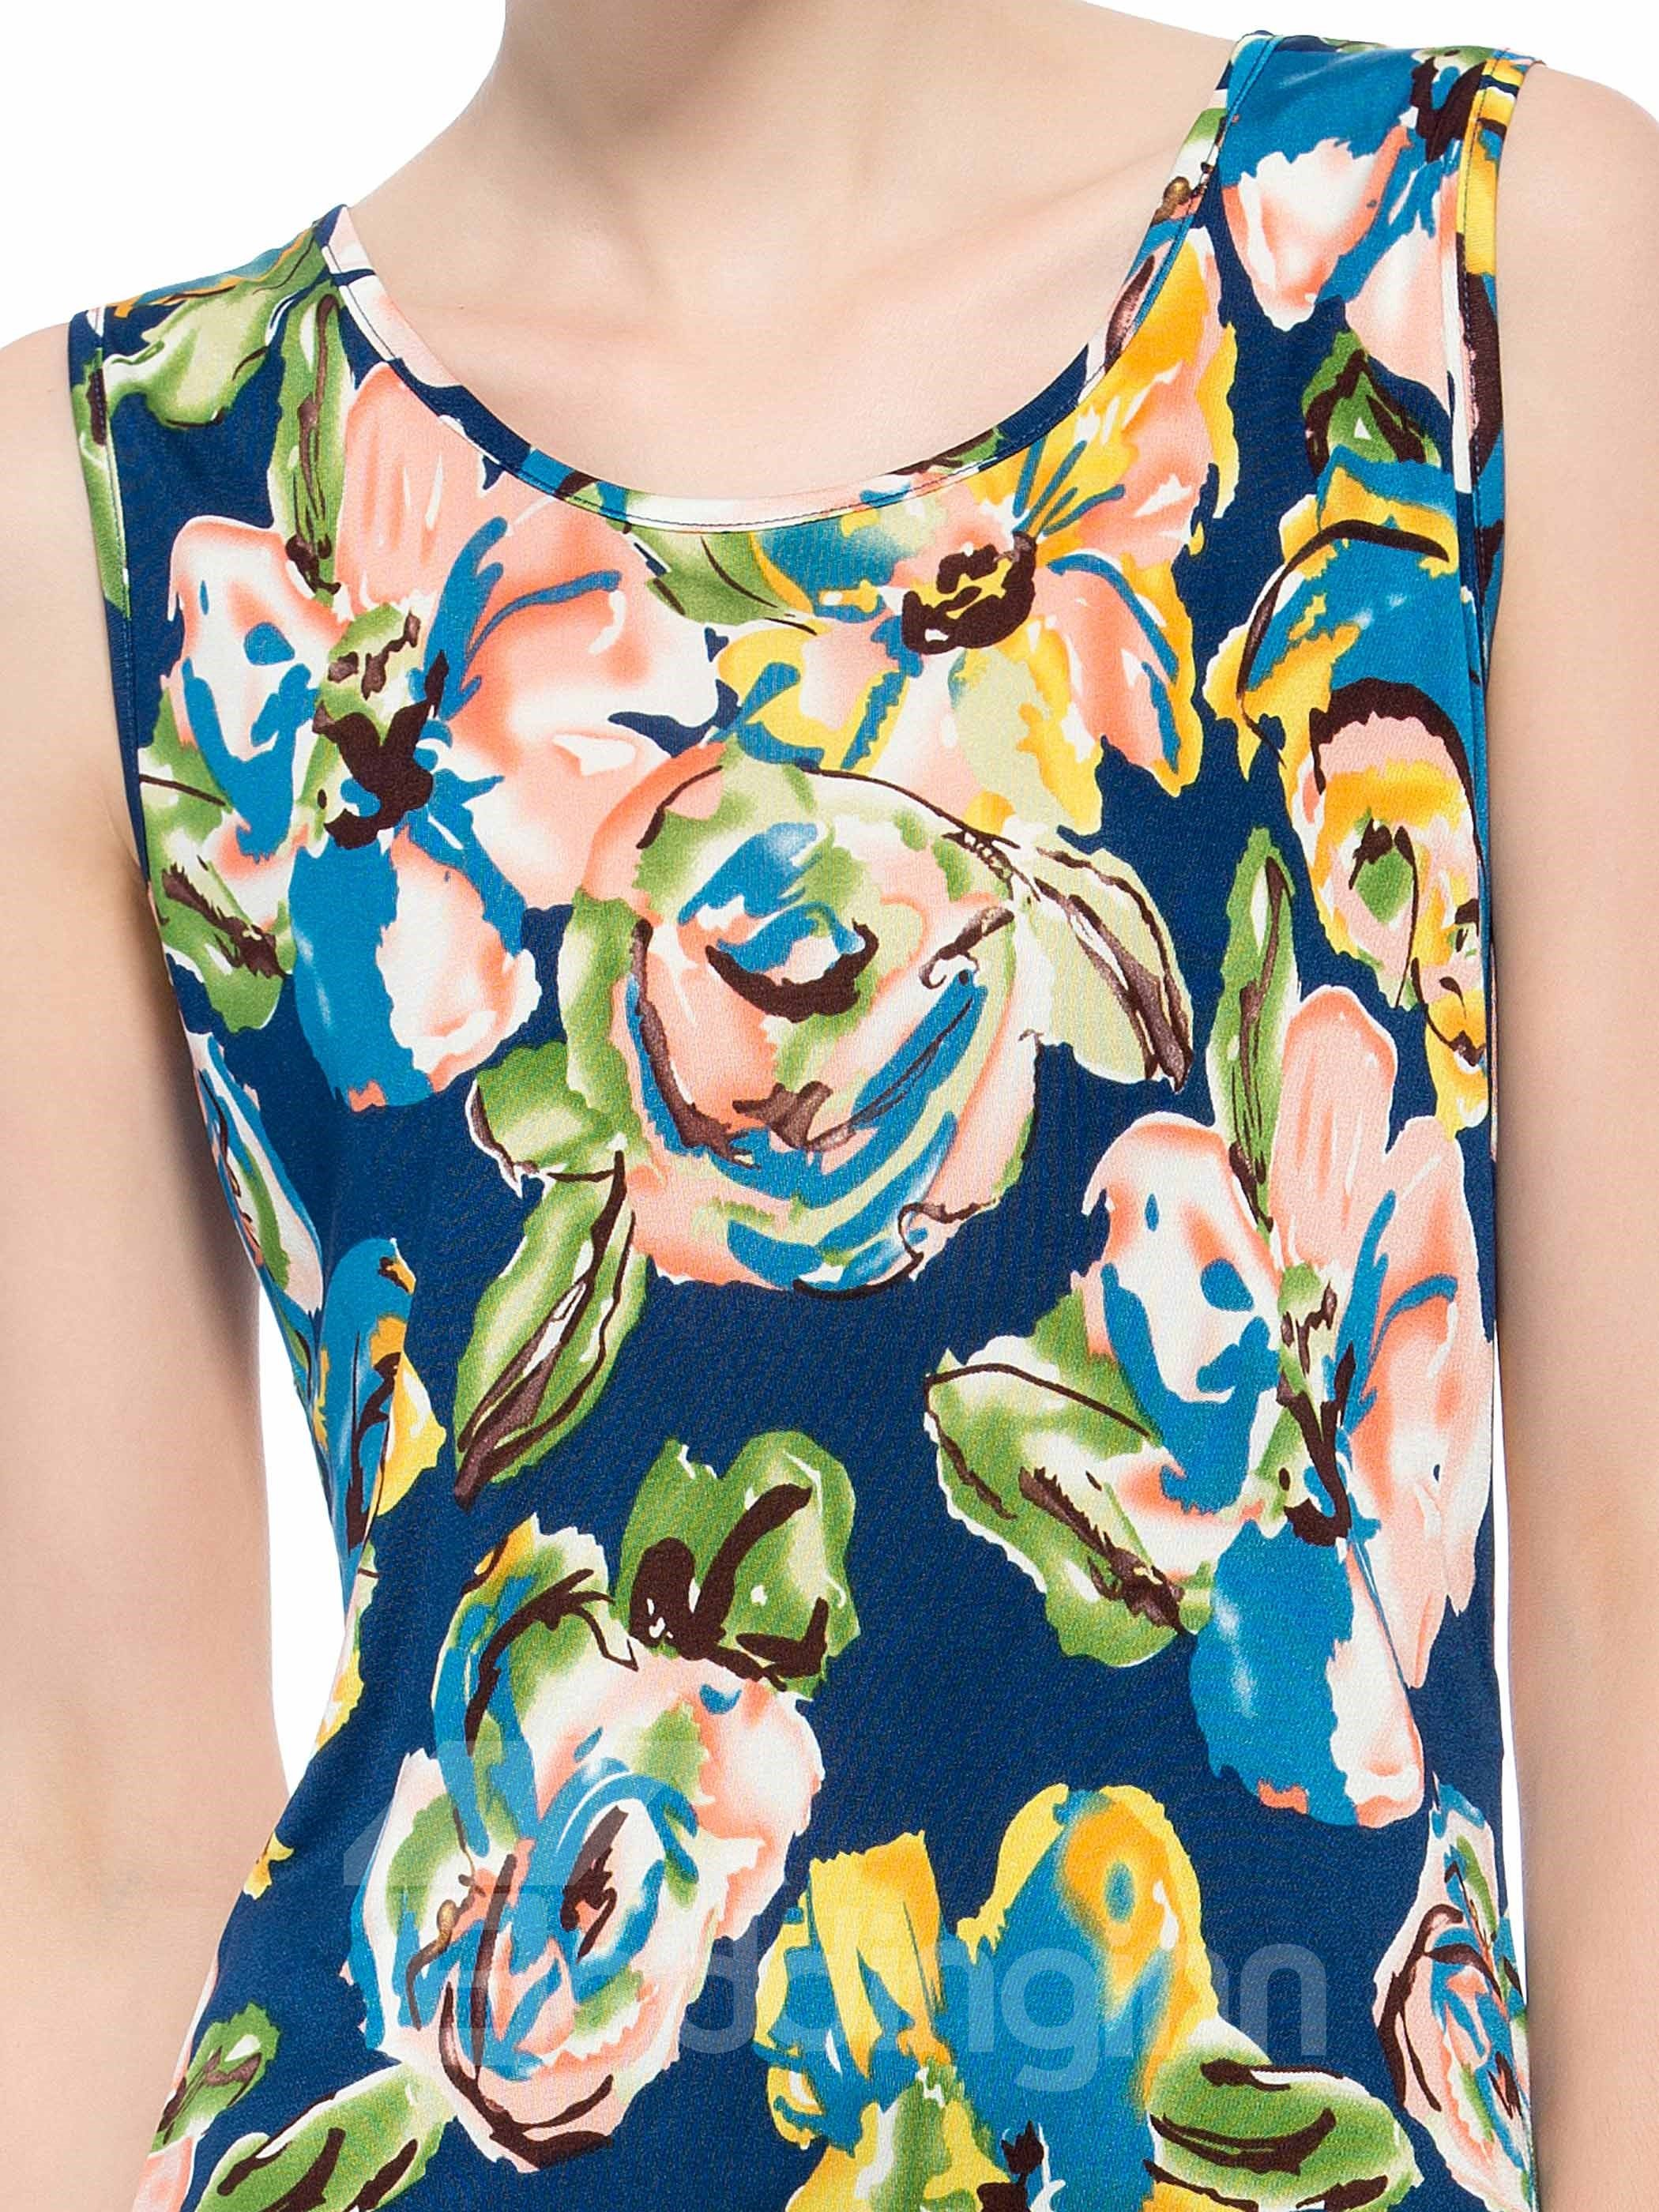 Top Quality Wonderful Flowers Print Silk Camisole